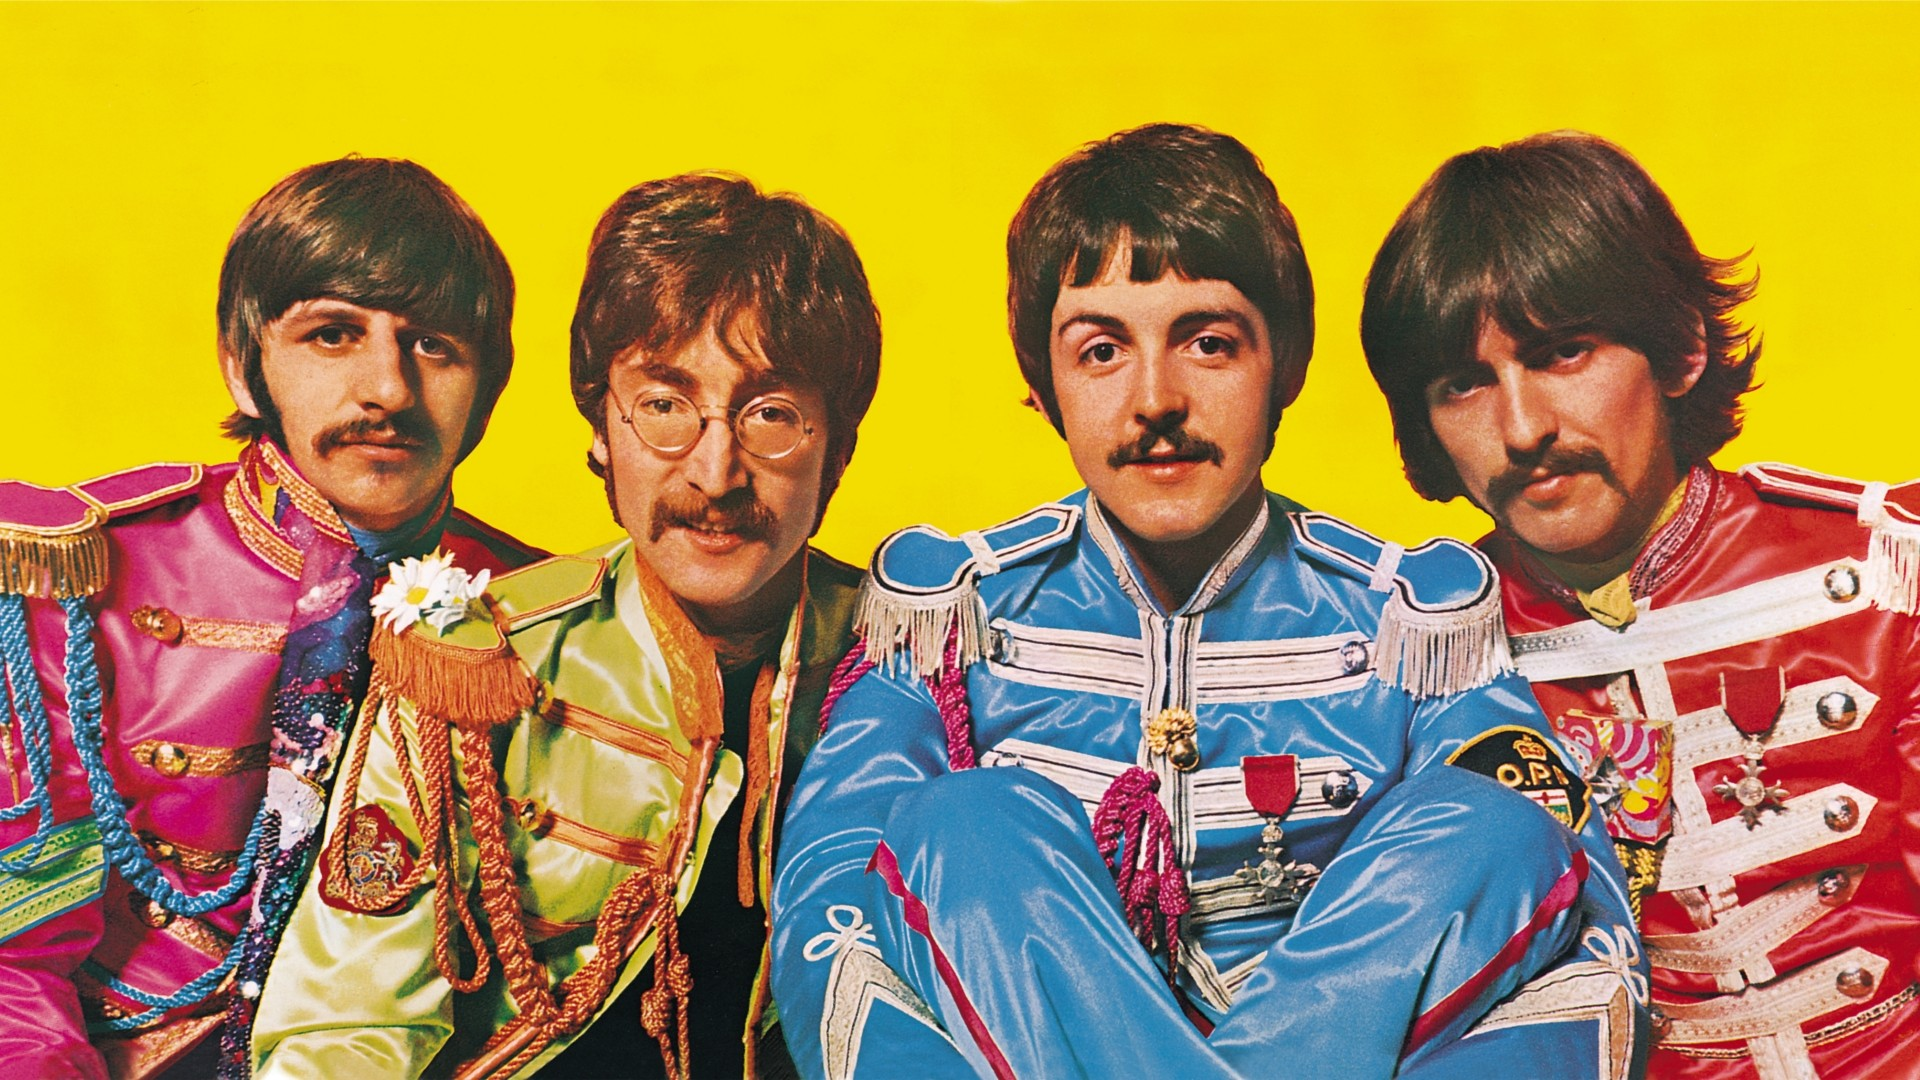 sgtpeppers02